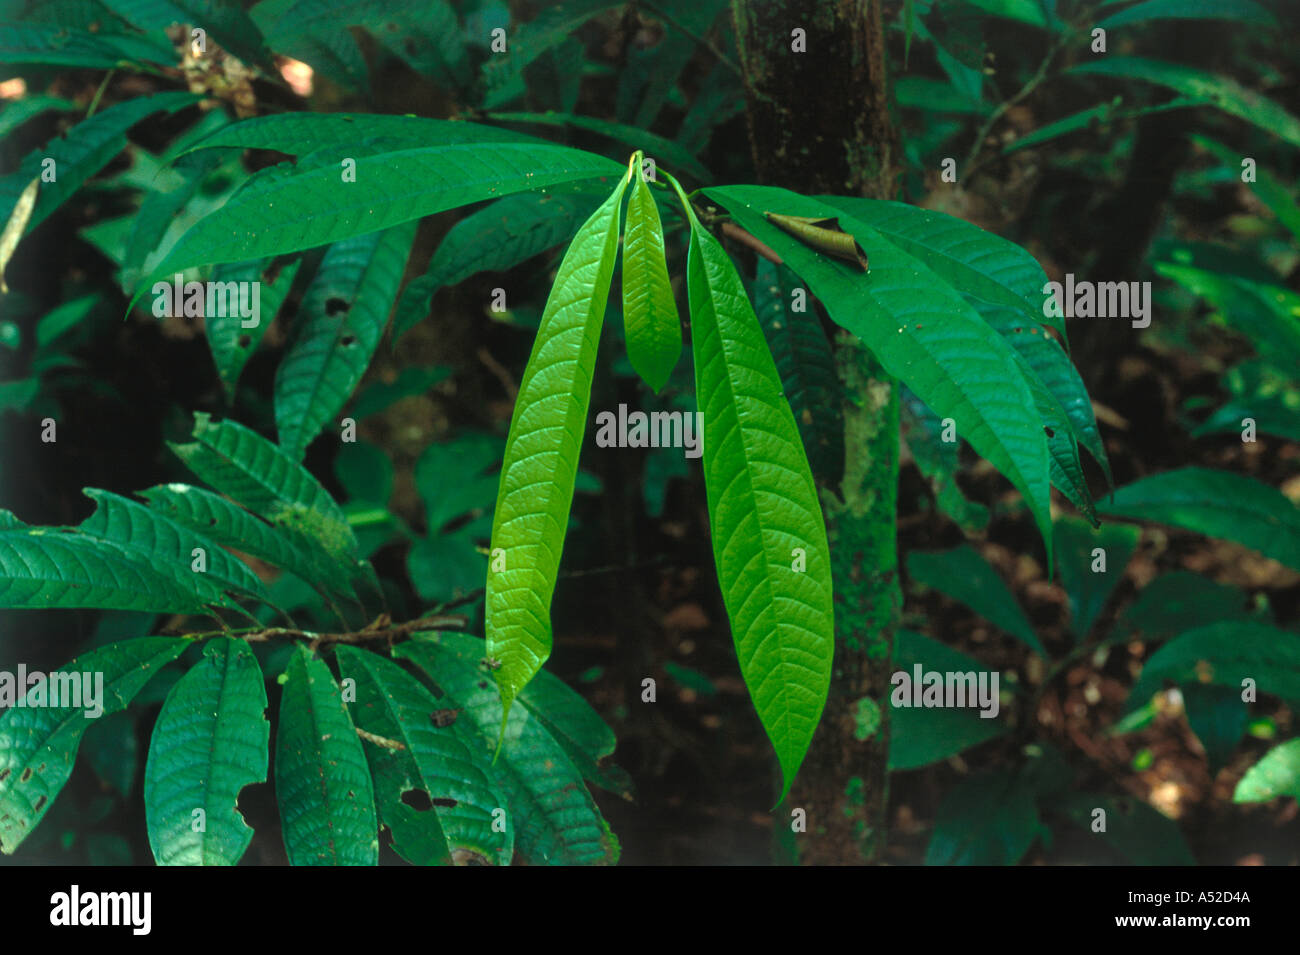 Hanging bright green young leaves in undergrowth of tropical rainforest Amazon region Peru - Stock Image